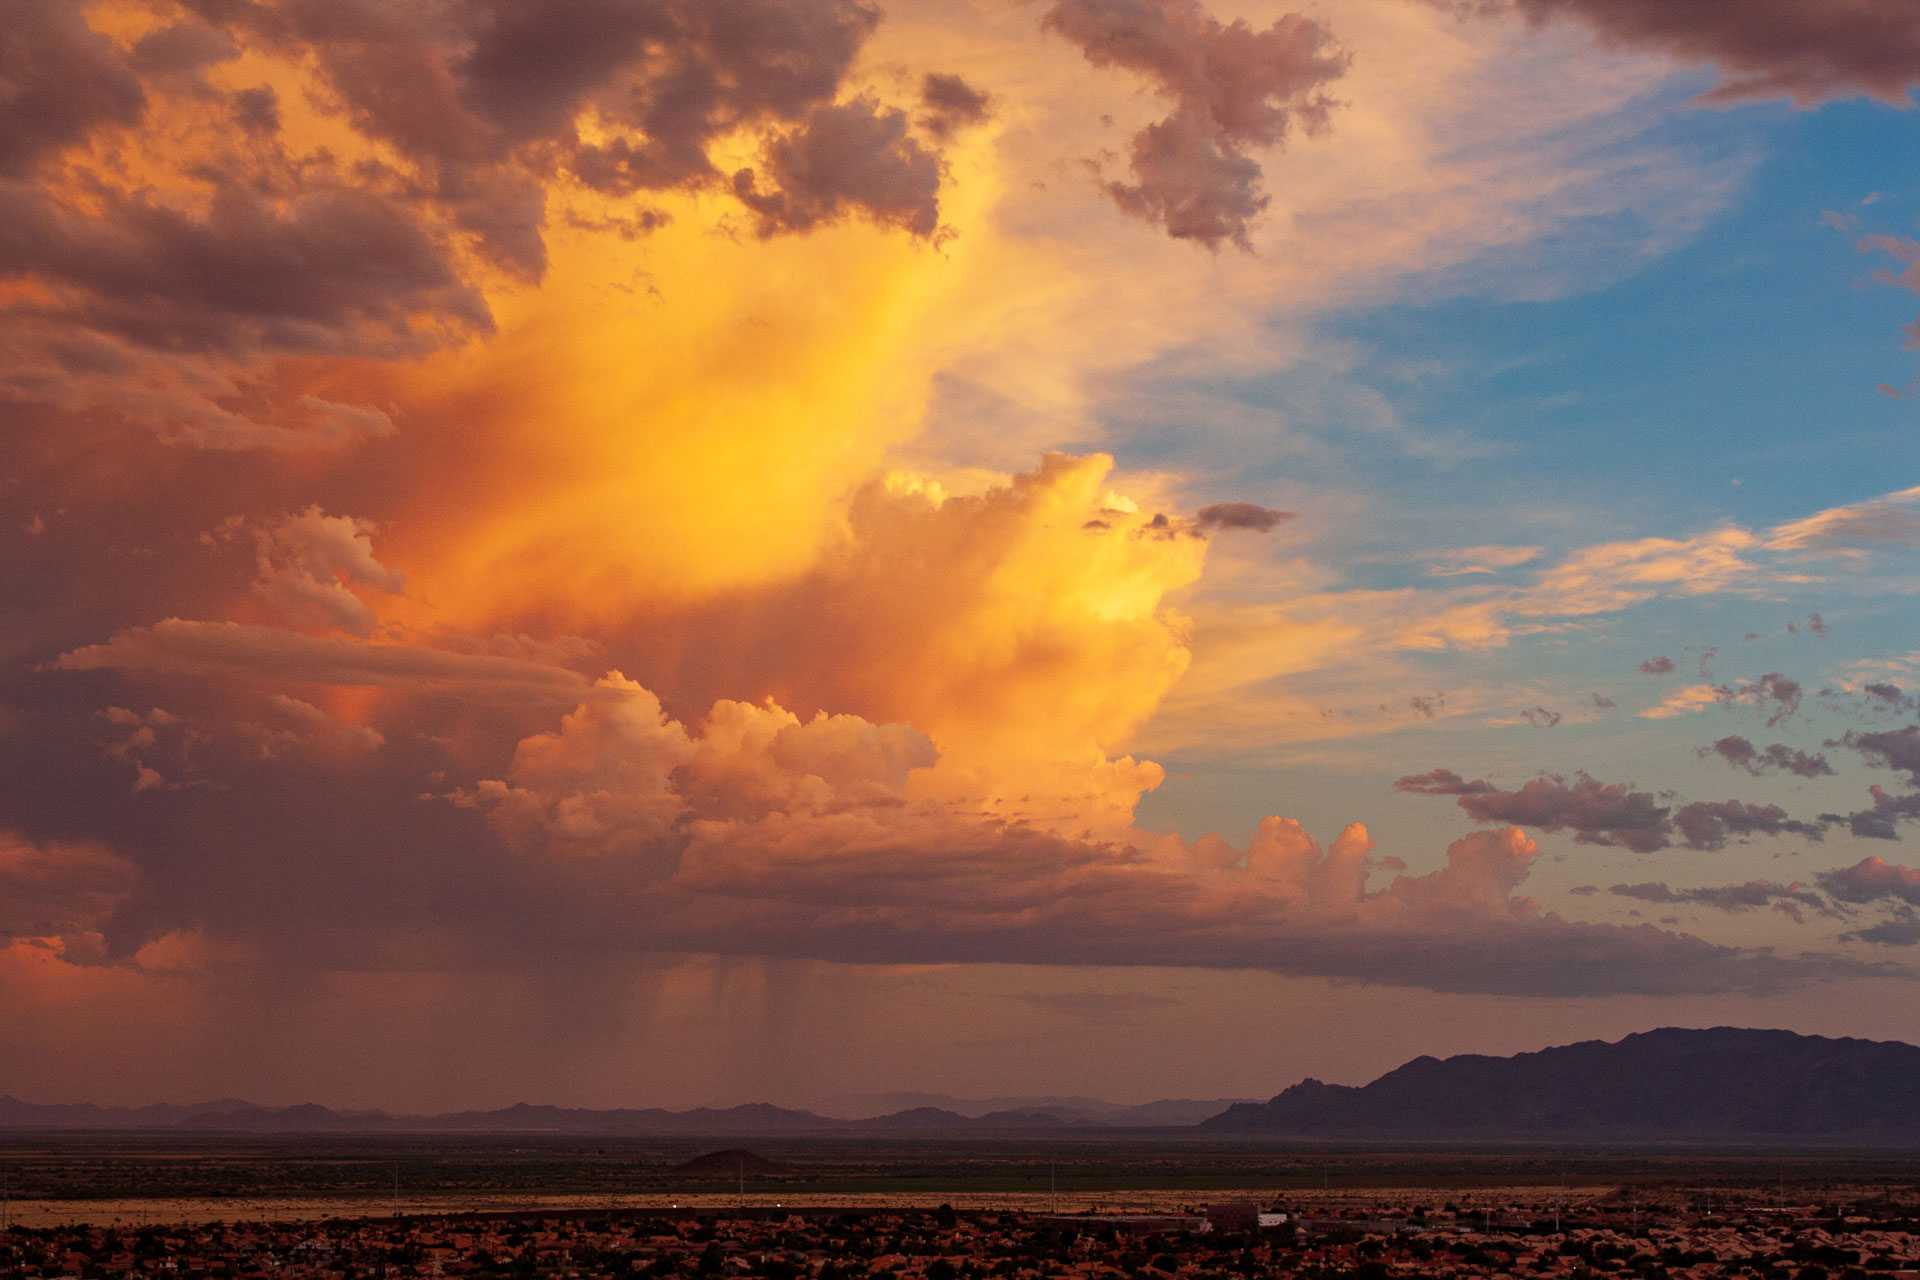 An Arizona monsoon storm at sunset